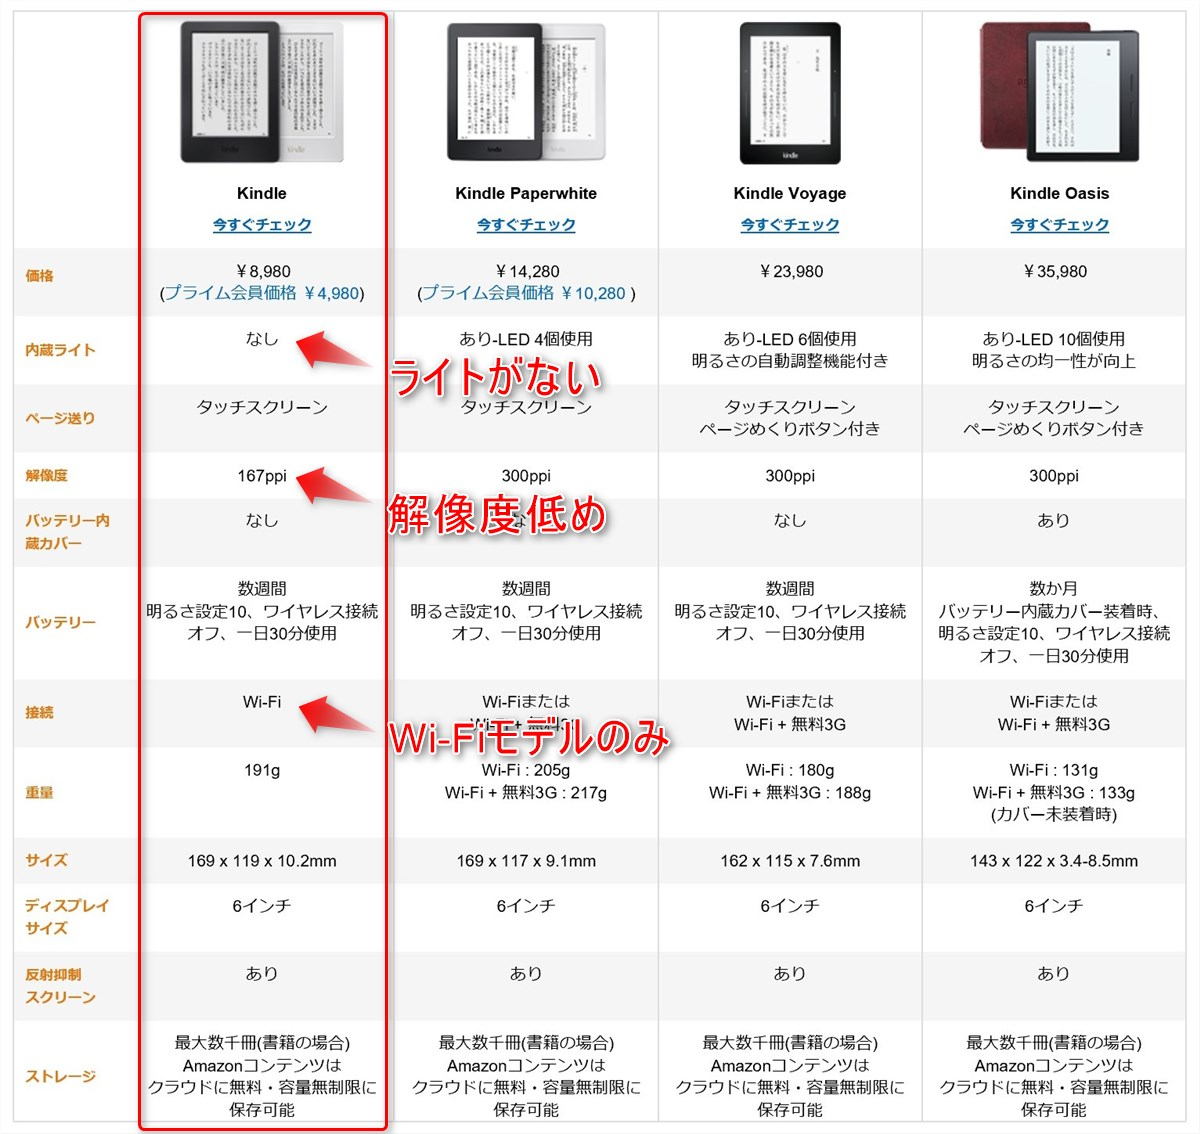 Kindle spec